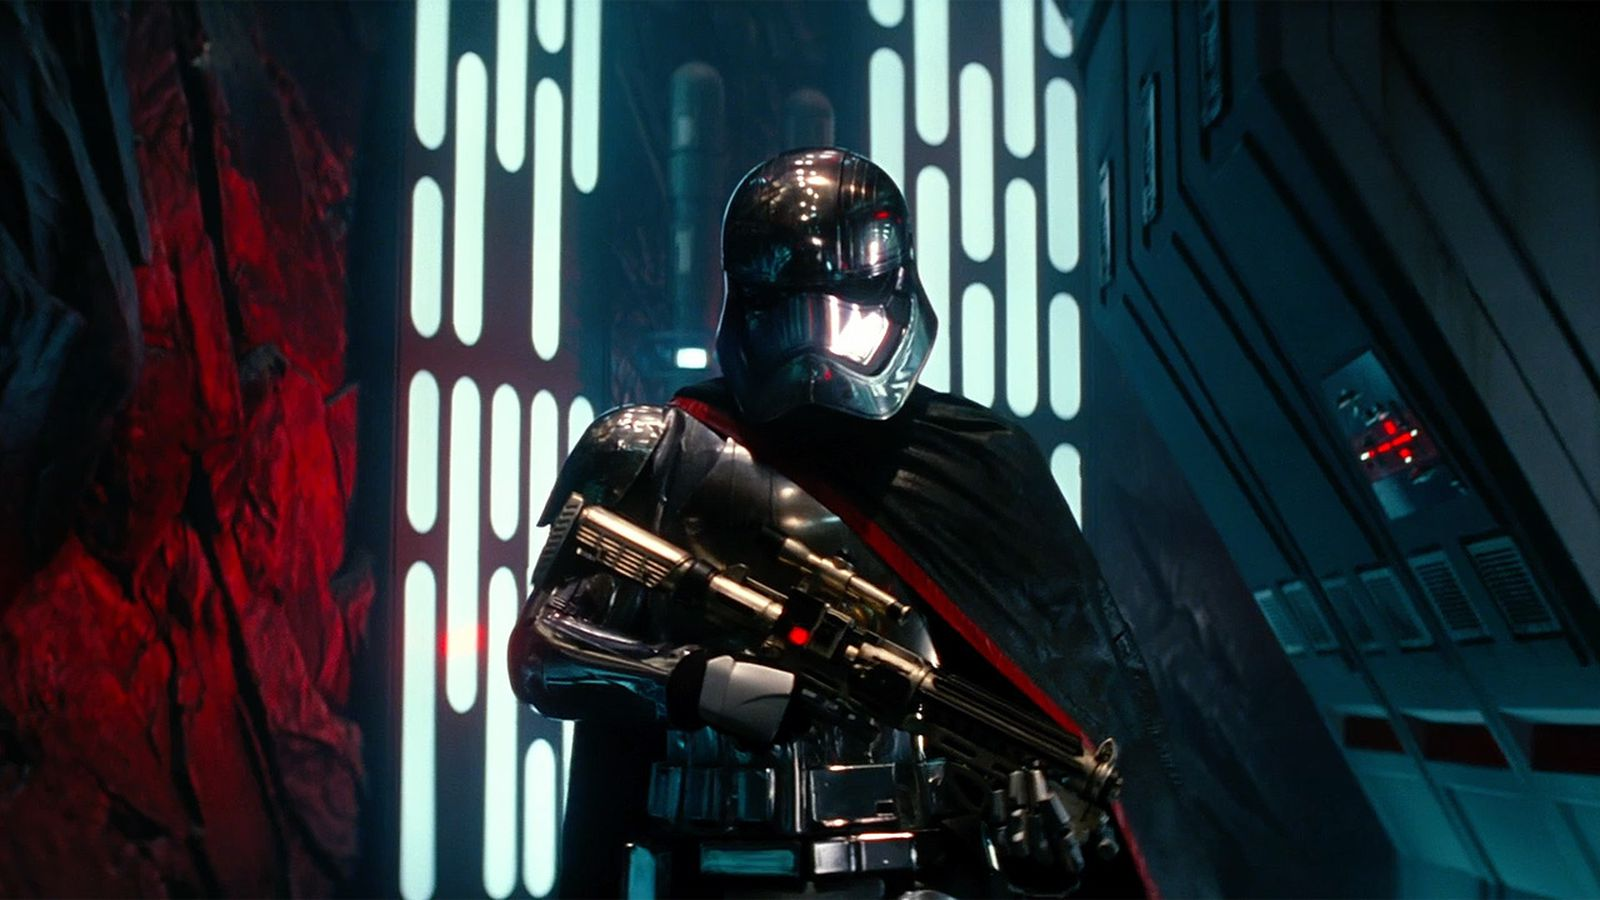 phasma star wars personaggi secondari